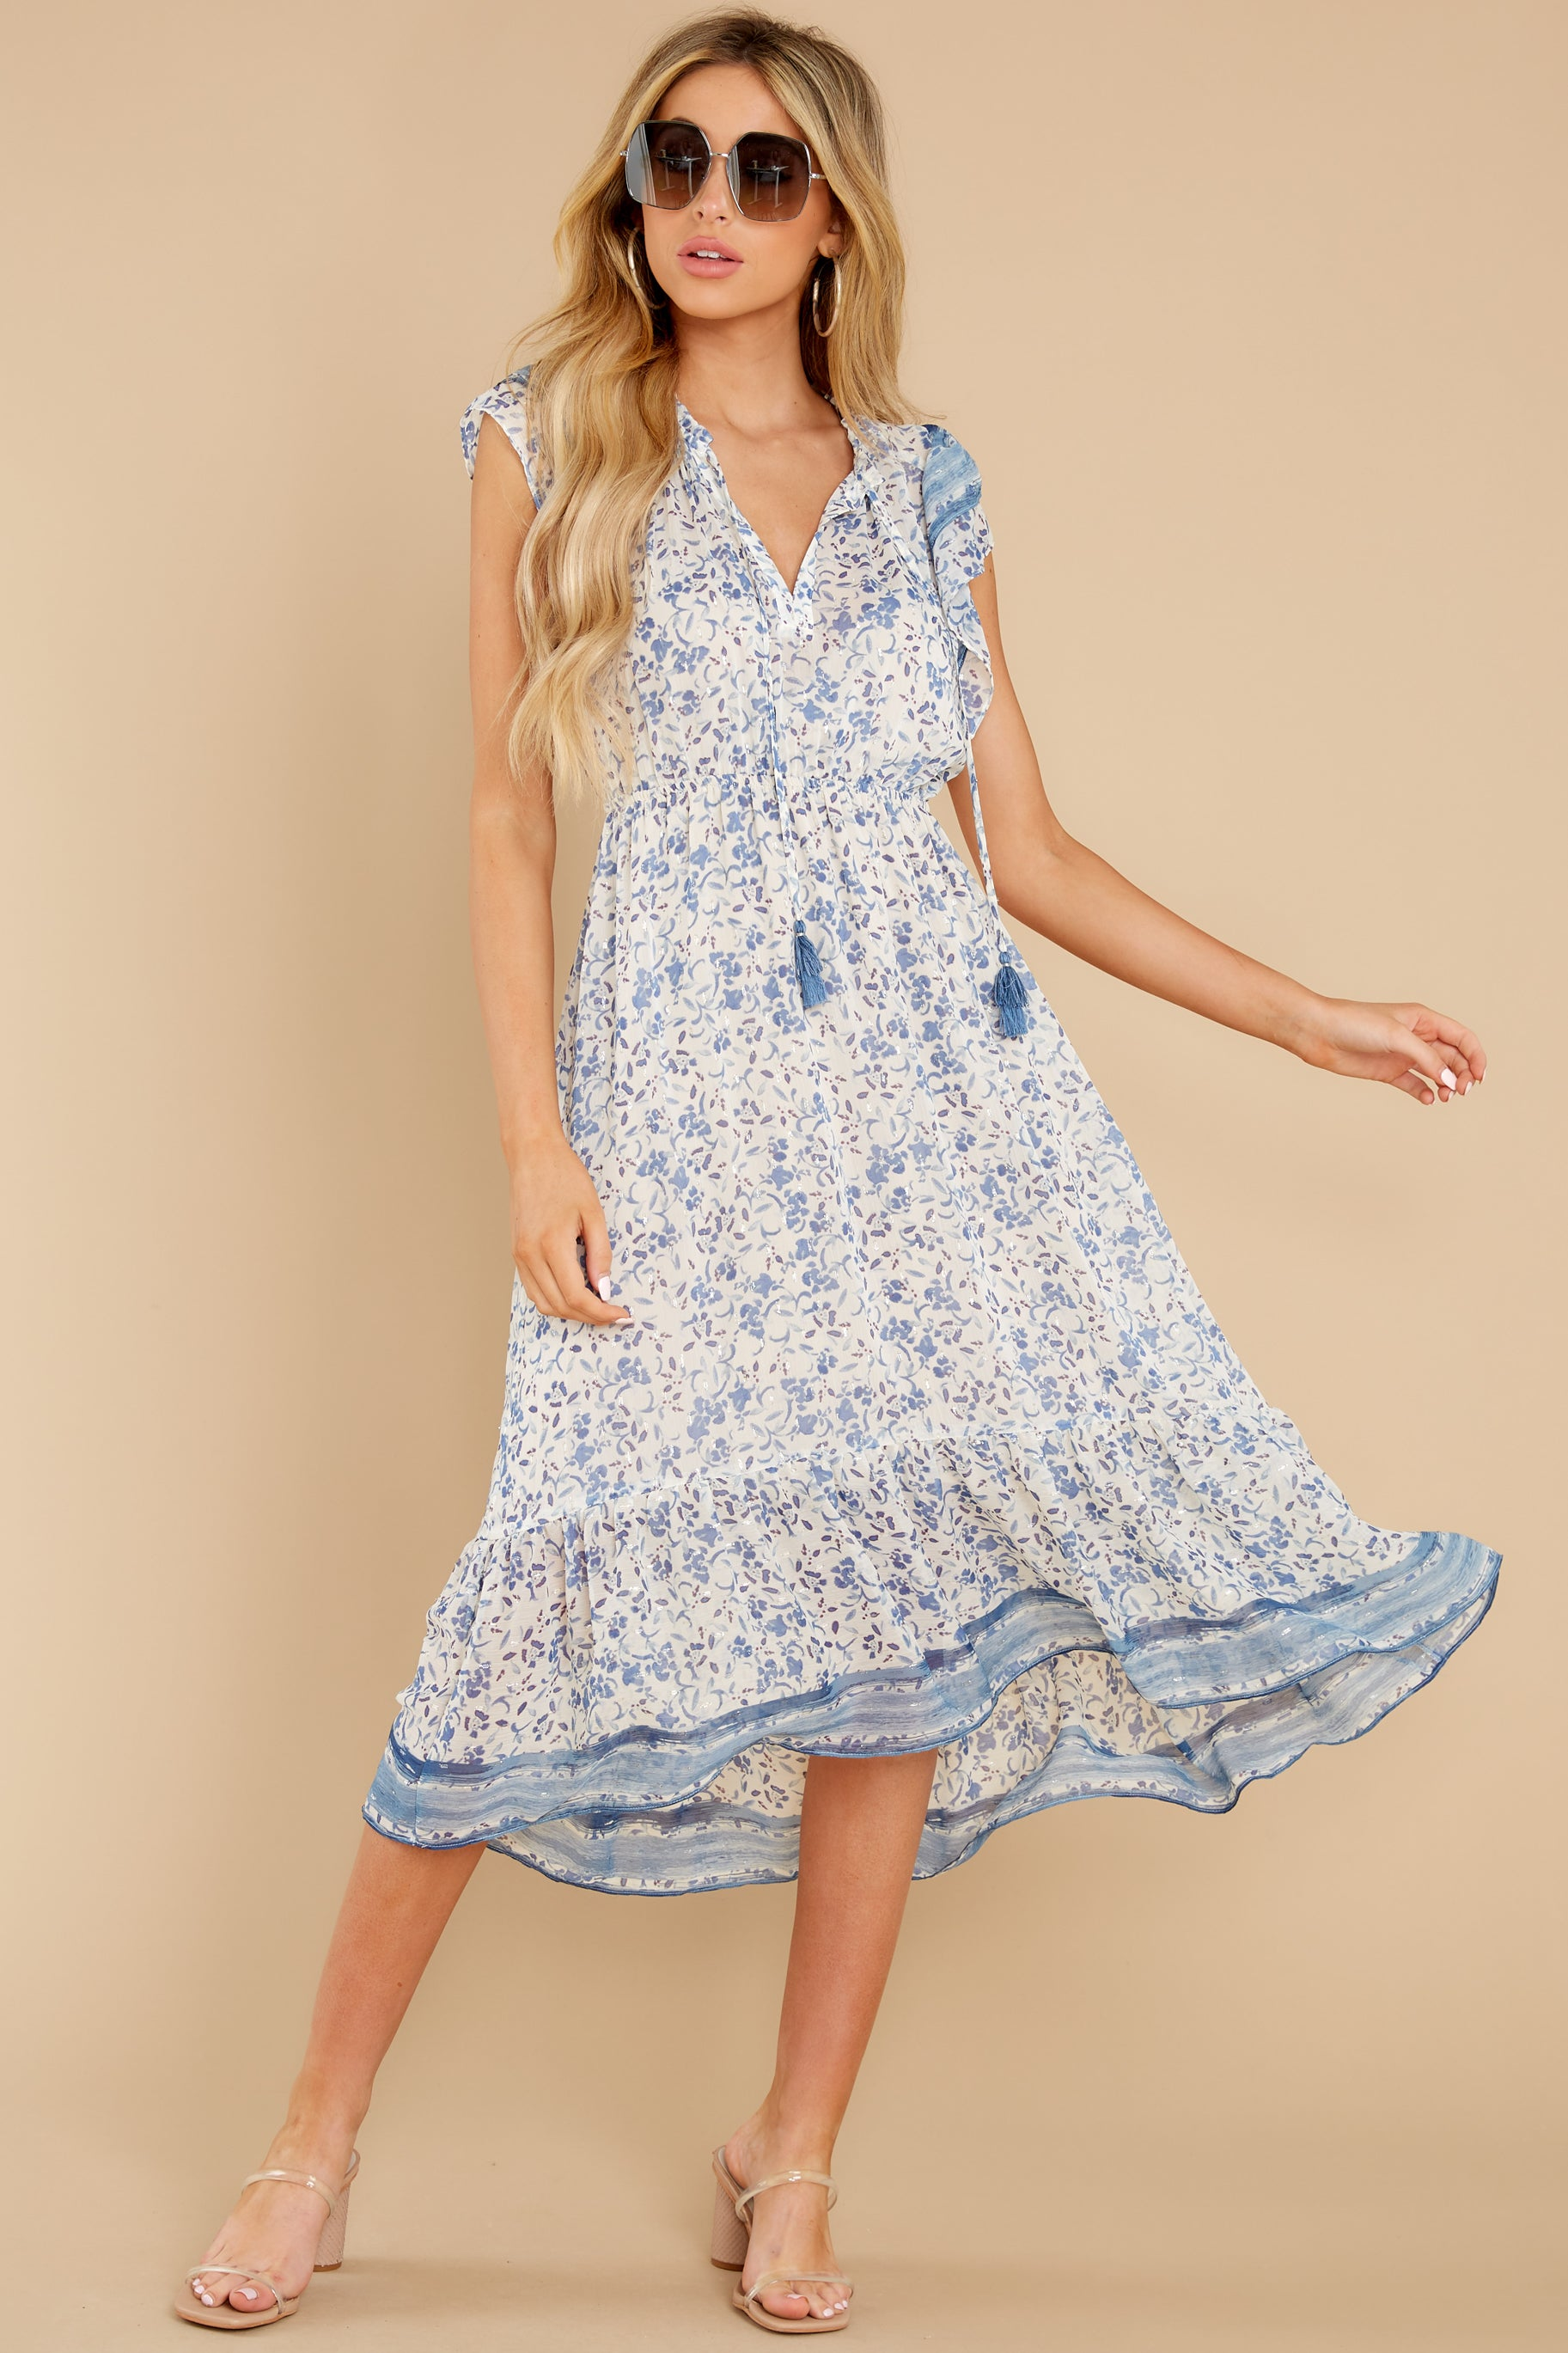 2 Nothing But Us Blue Floral Print Midi Dress at reddress.com